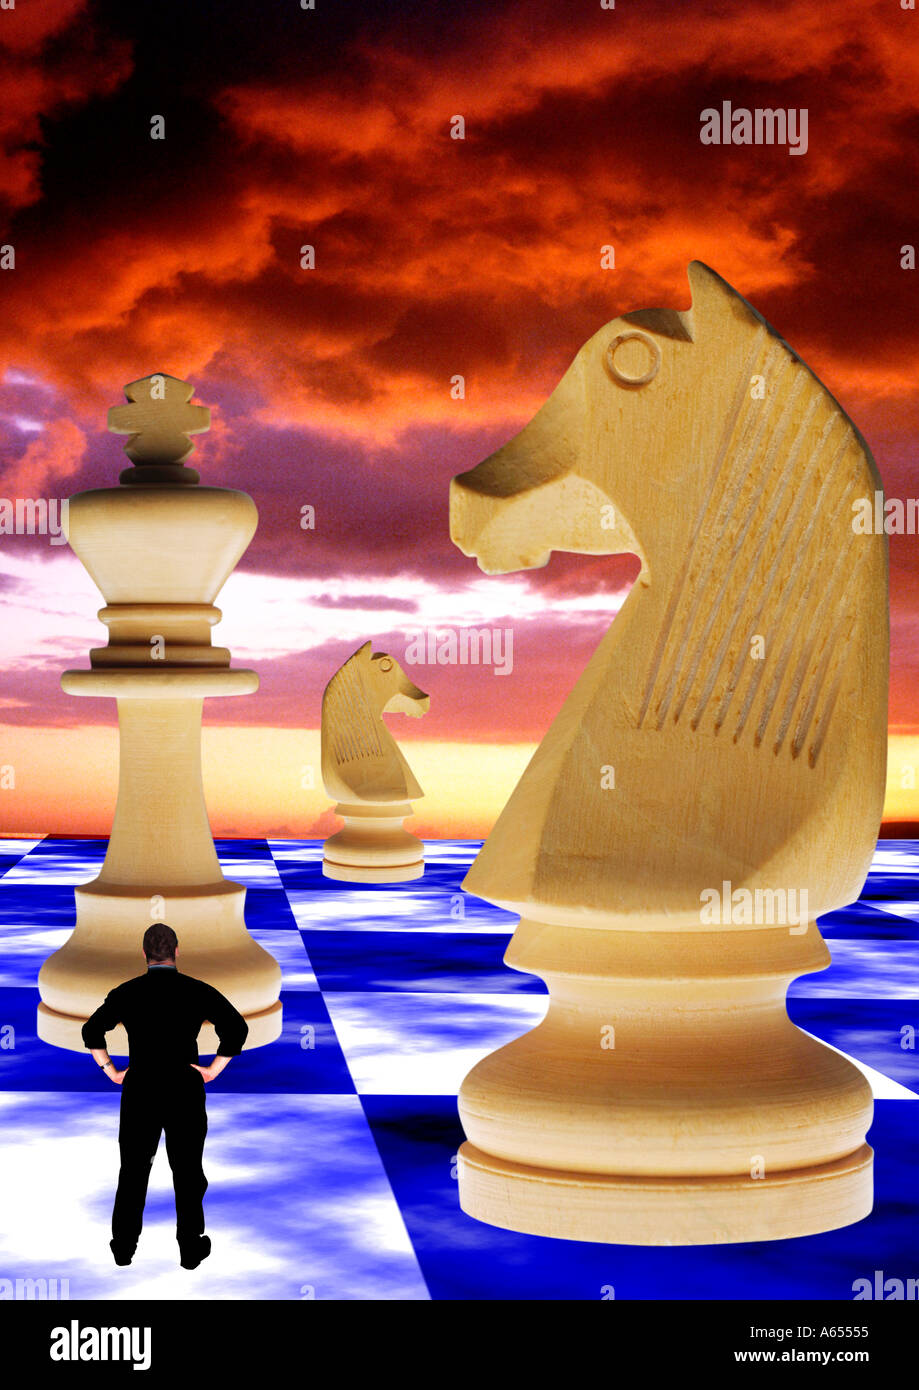 Giant Chess Game Abstract concept special effects - Stock Image